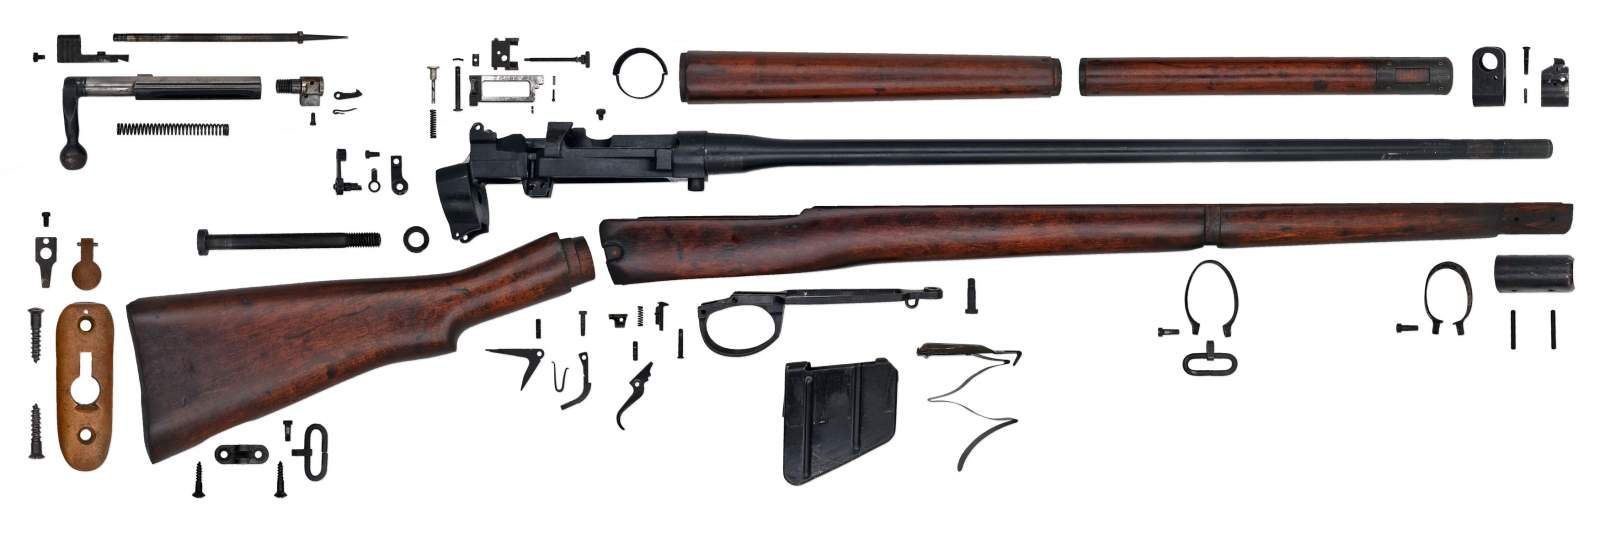 Anatomy-Rifle-LE-No4-MkI.